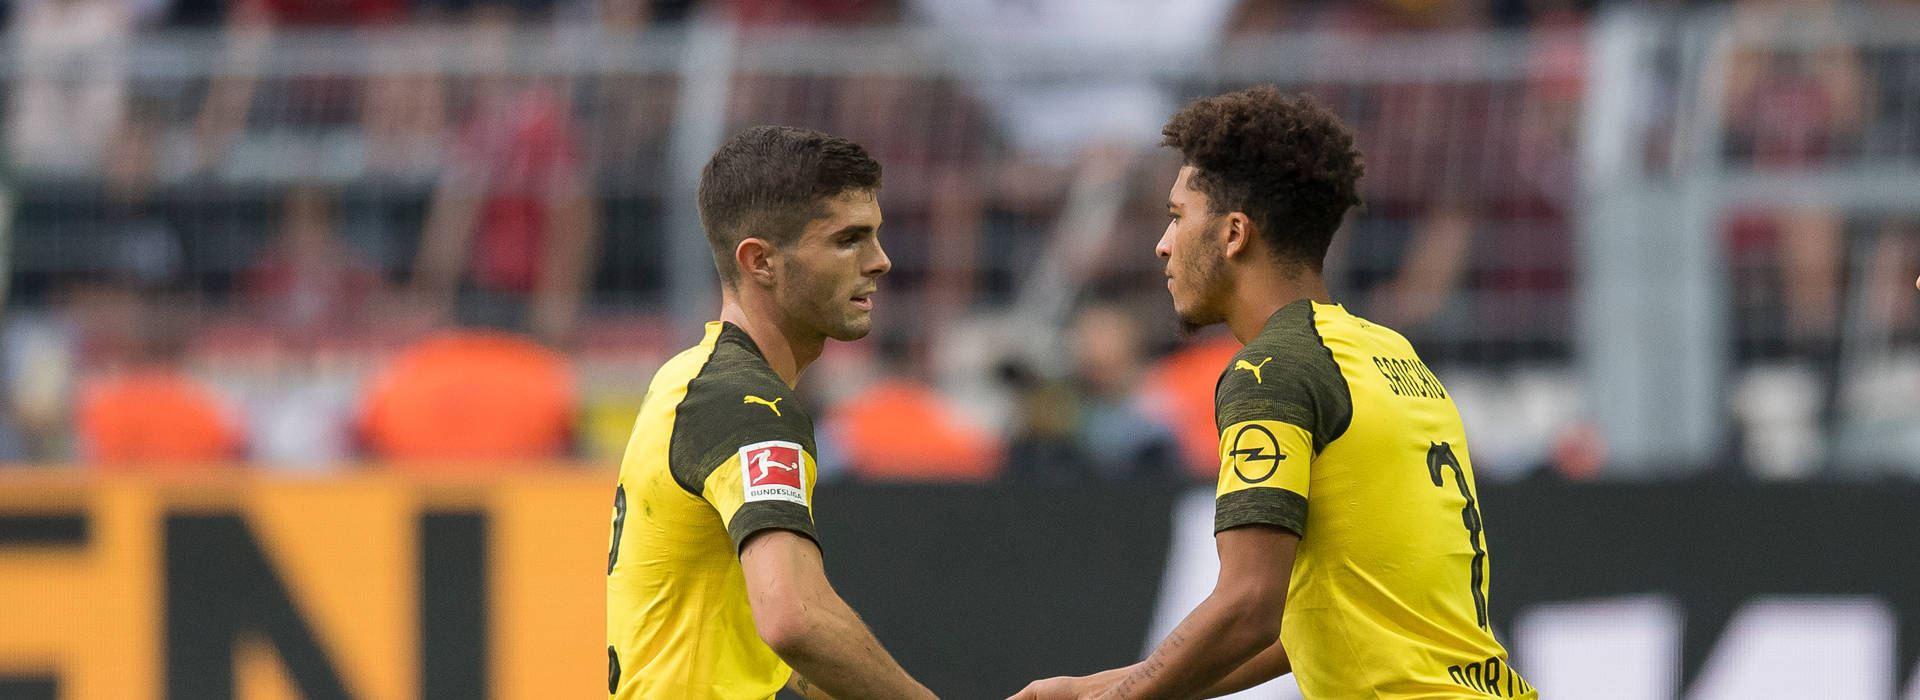 Sancho to face Pulisic as 13 BVB players receive call-ups